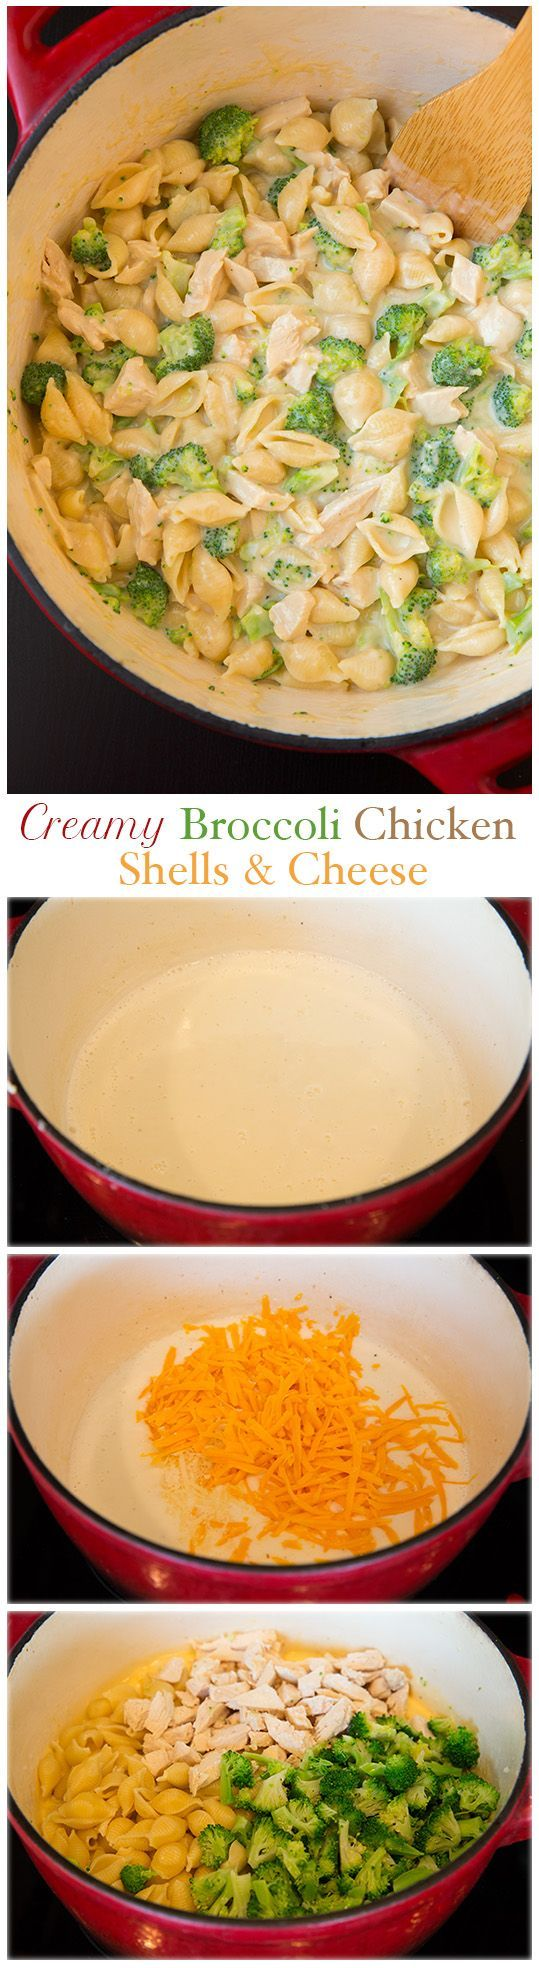 Creamy Broccoli Chicken Shells and Cheese - this is made lighter yet it's so incredibly DELICIOUS!! Finally a meal the whole family can agree on.: